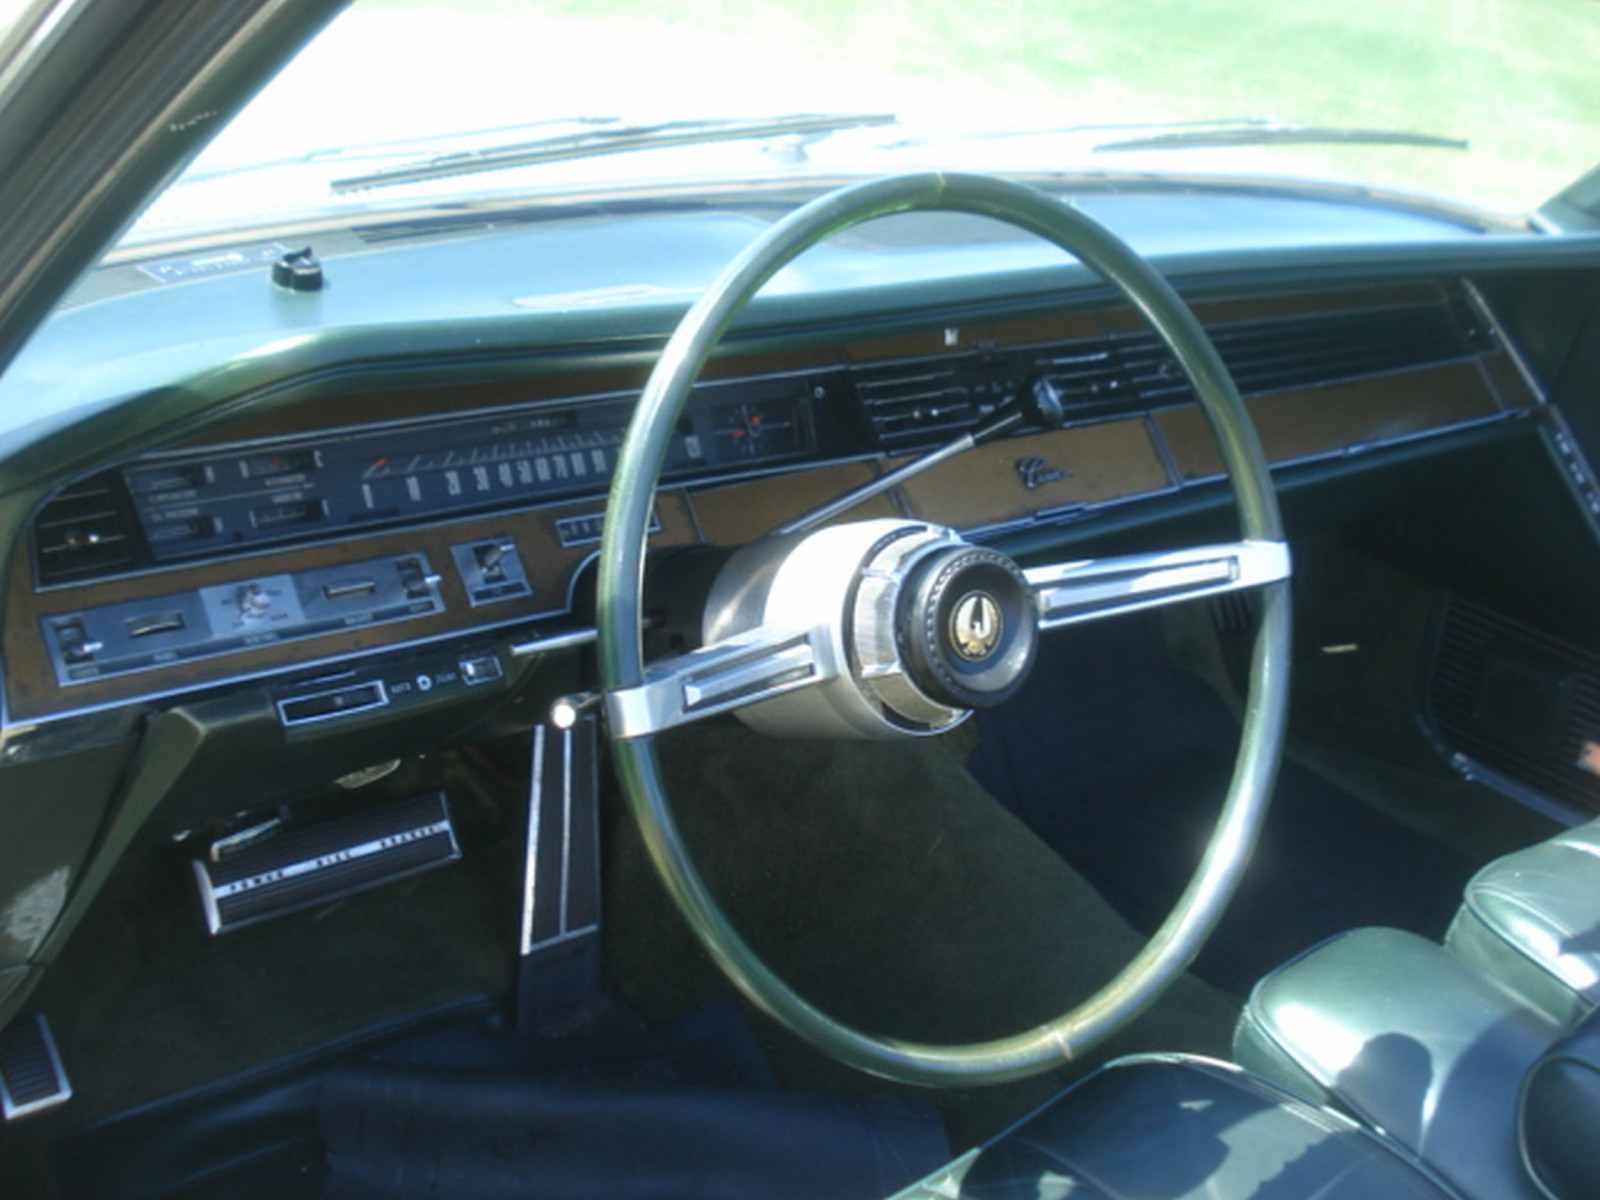 1968 Chrysler Imperial Crown Convertible - Image 21